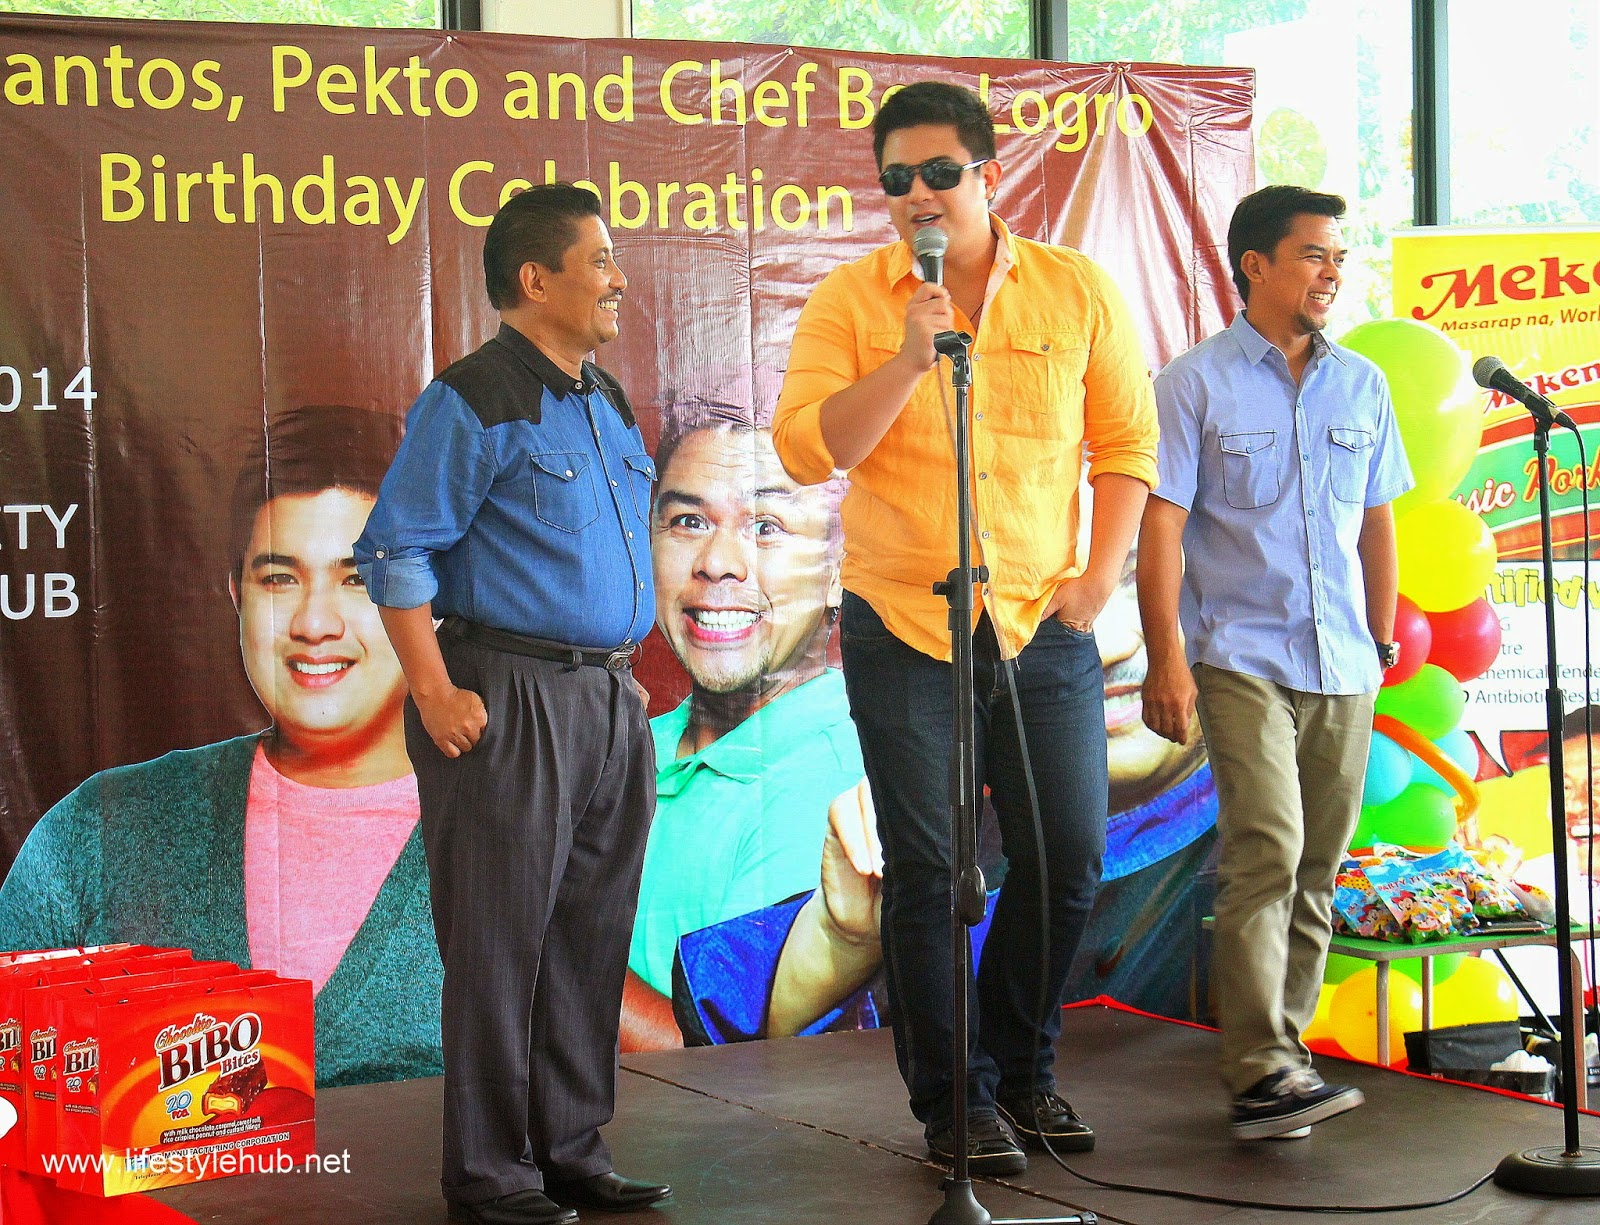 birthday celebration chef boy logro, kevin santos pekto